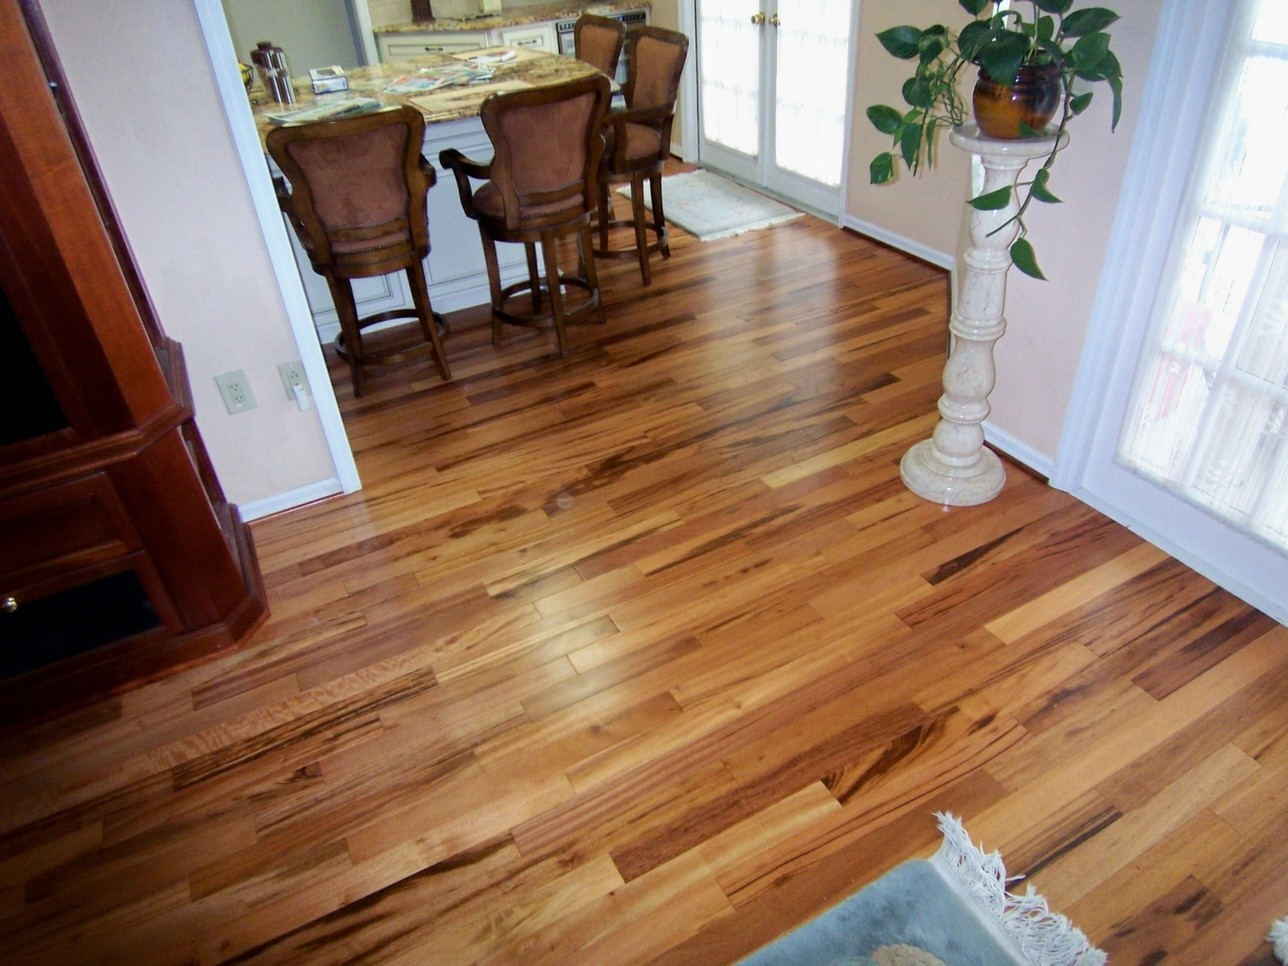 tiger wood hardwood flooring tigerwood hardwood flooring carpet vidalondon brazilian koa hardwood  flooring BSMAIMW